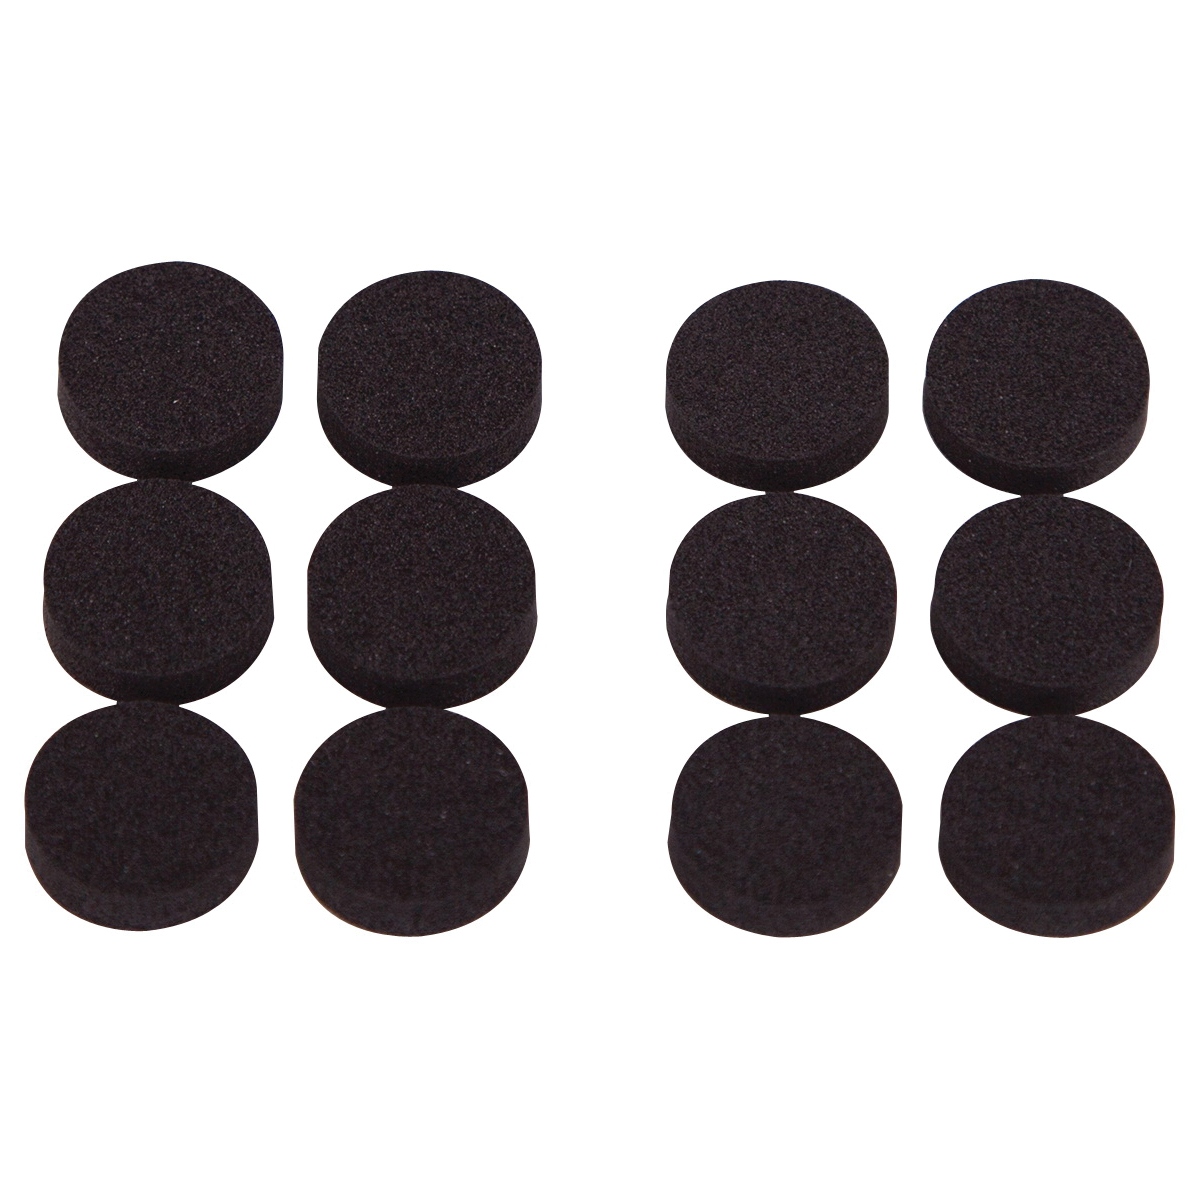 Picture of ProSource FE-50720-PS Furniture Pad, Rubber, Black, 3/4 in Dia, Round